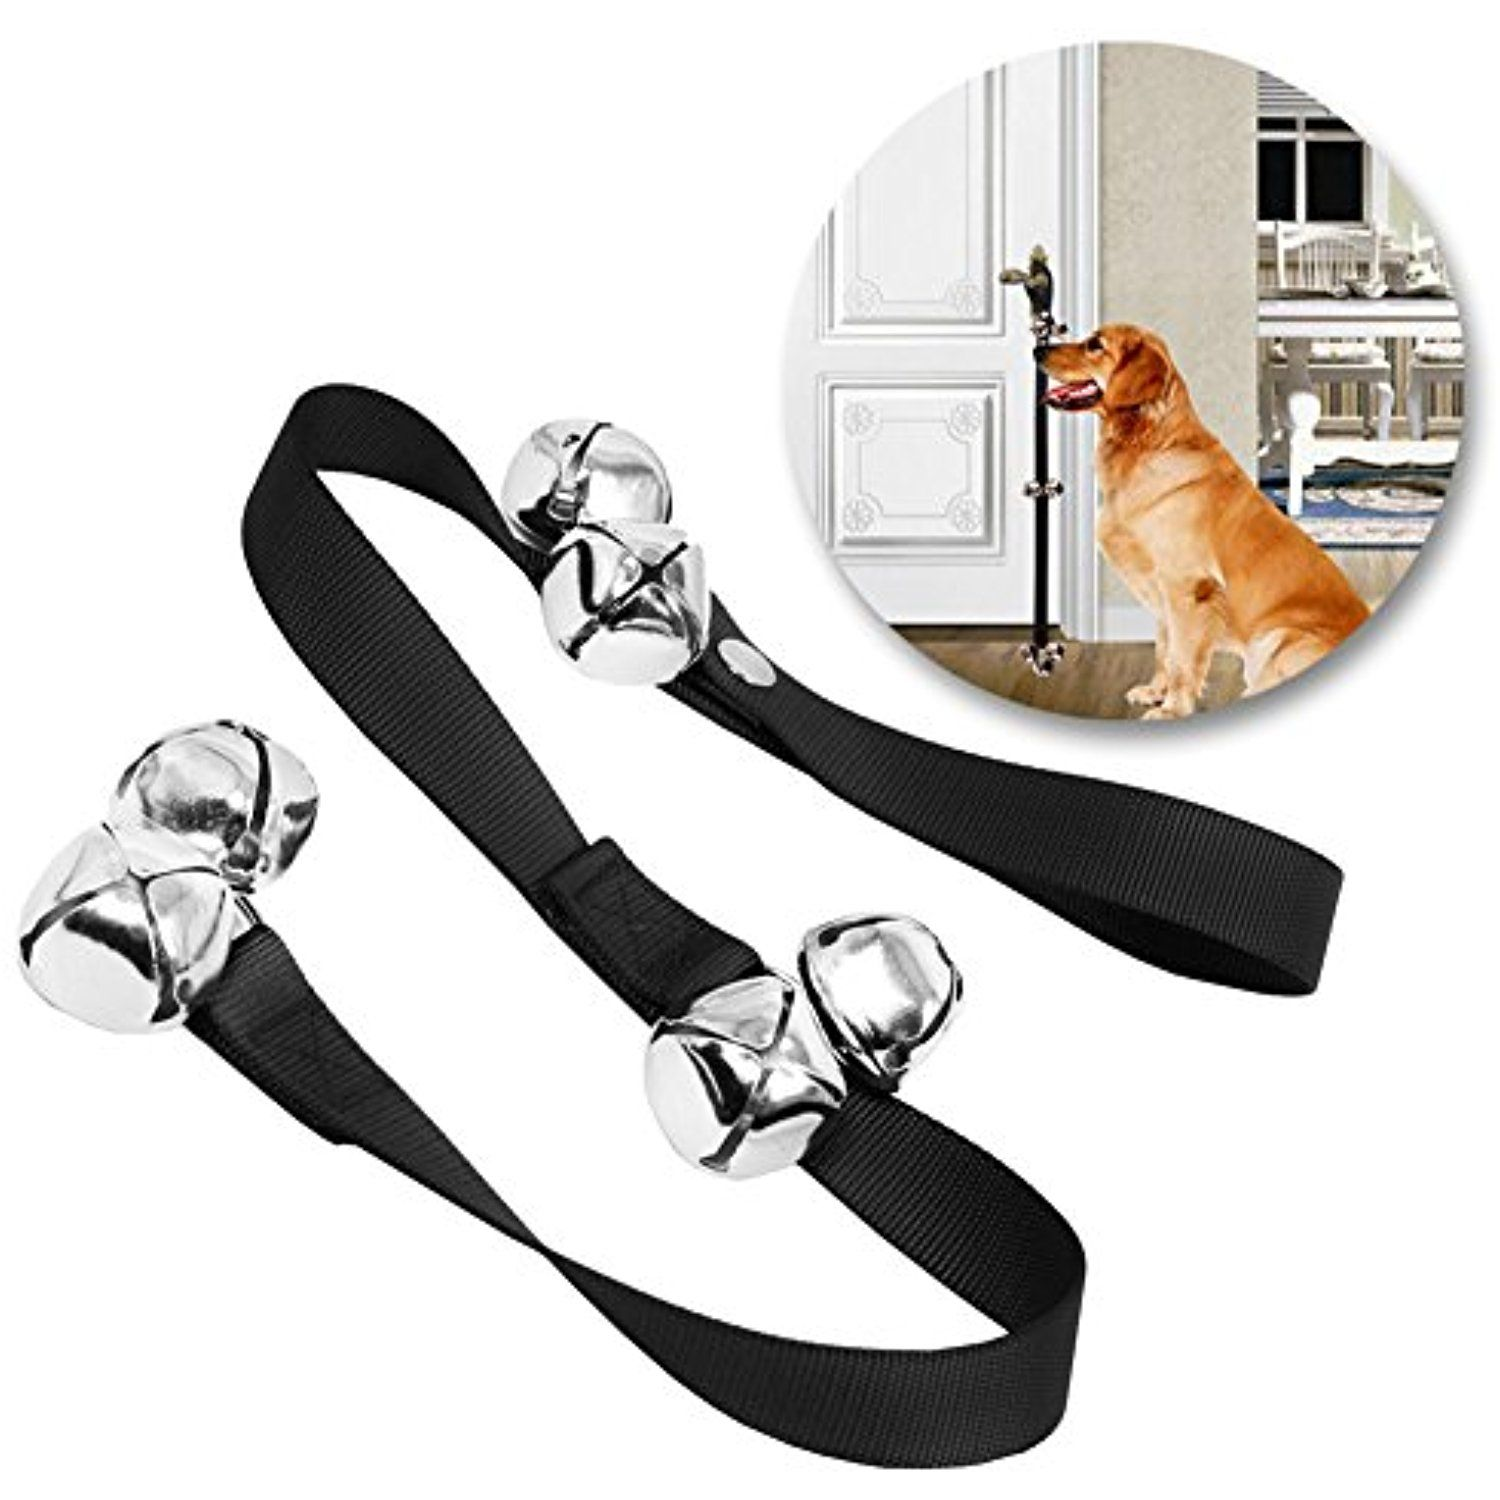 Up Dog Bell Loud Tinker Dog Doorbell For House Potty Training With